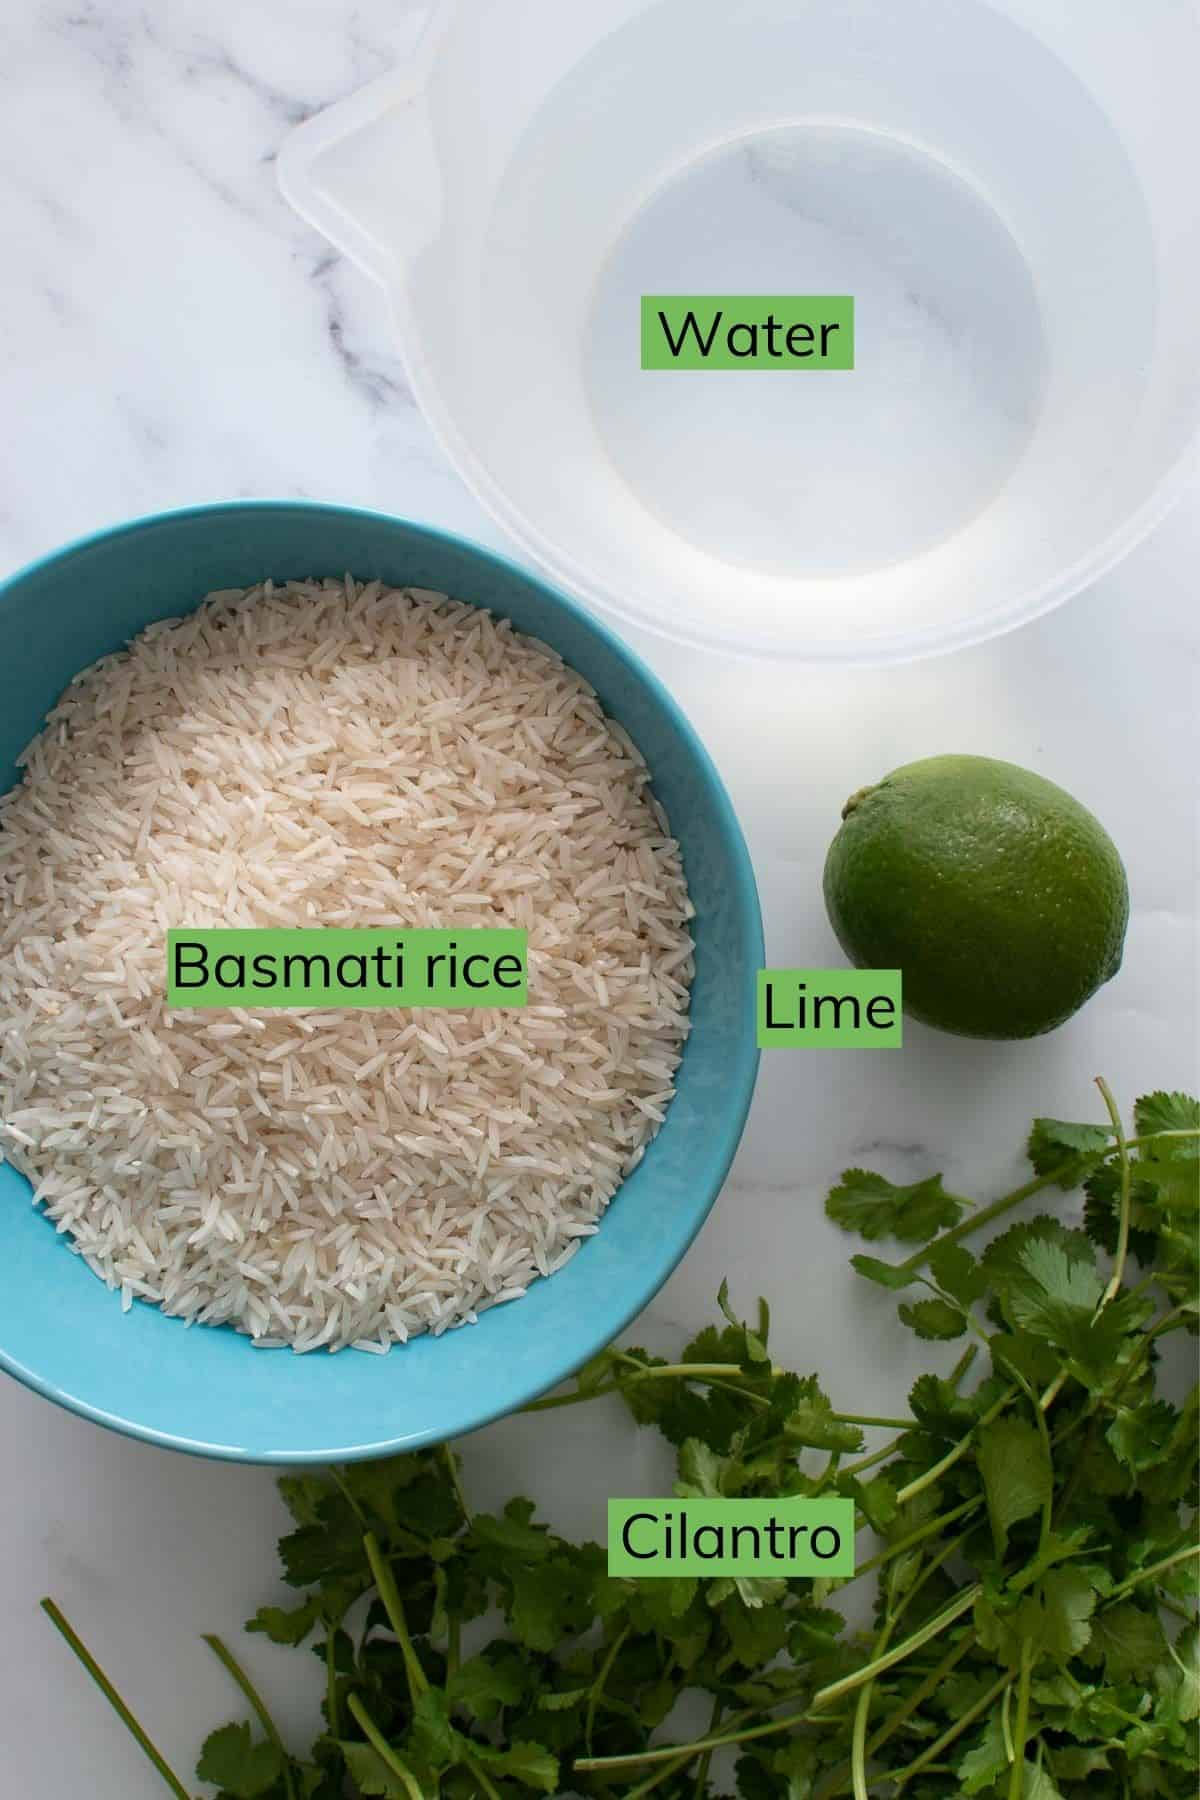 Rice, water, cilantro and lime laid out on a table.